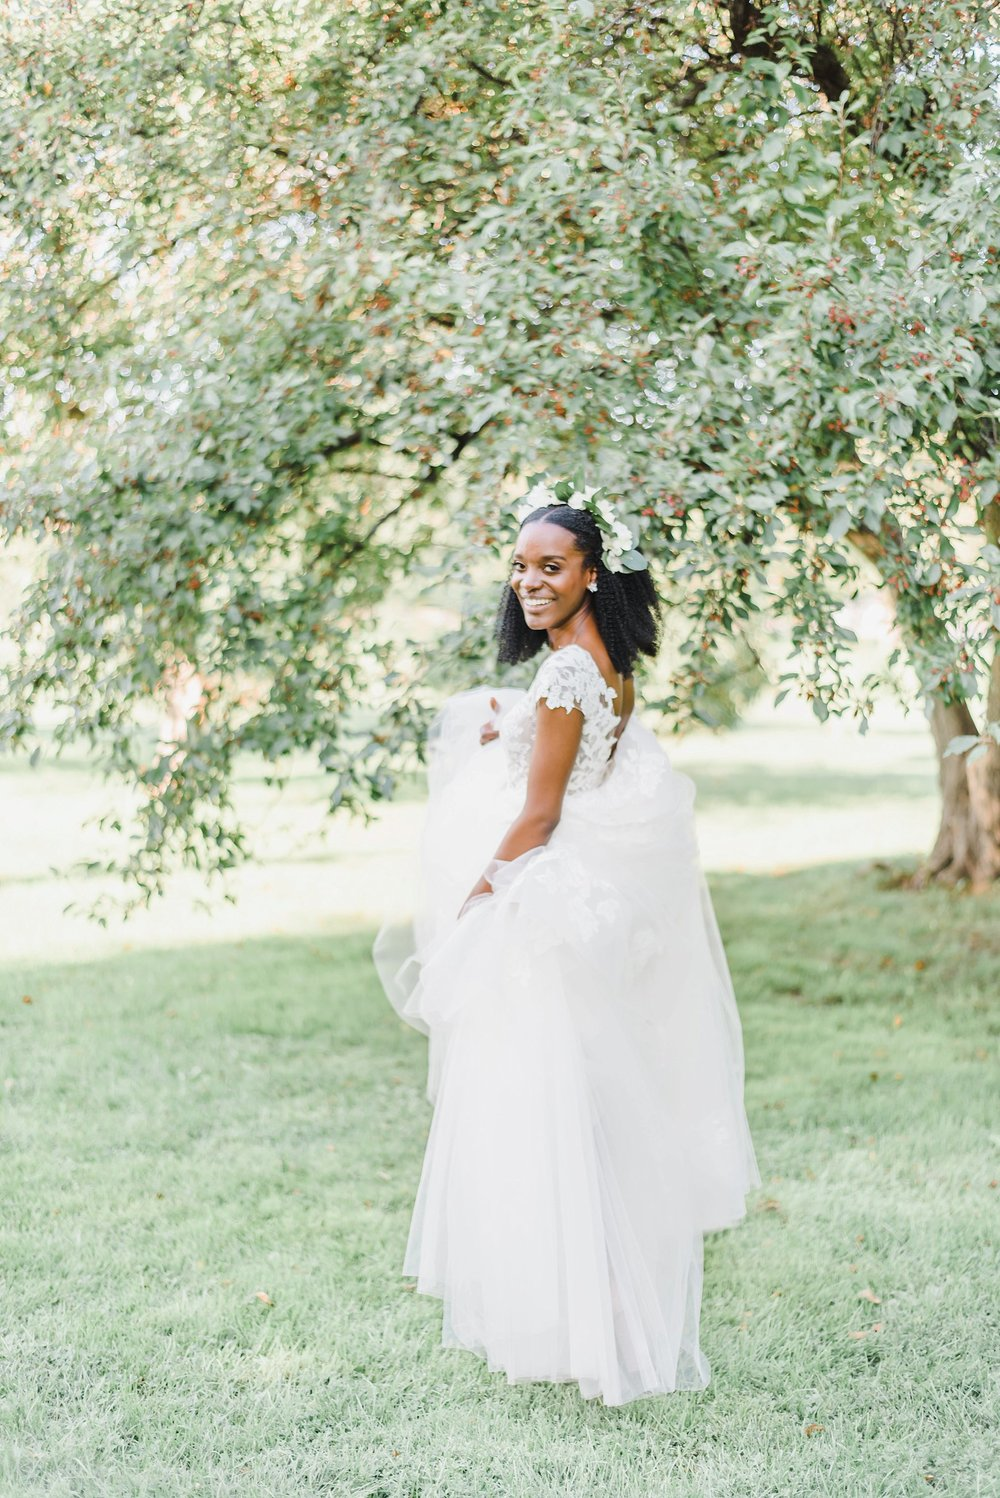 light airy indie fine art ottawa wedding photographer | Ali and Batoul Photography_1010.jpg